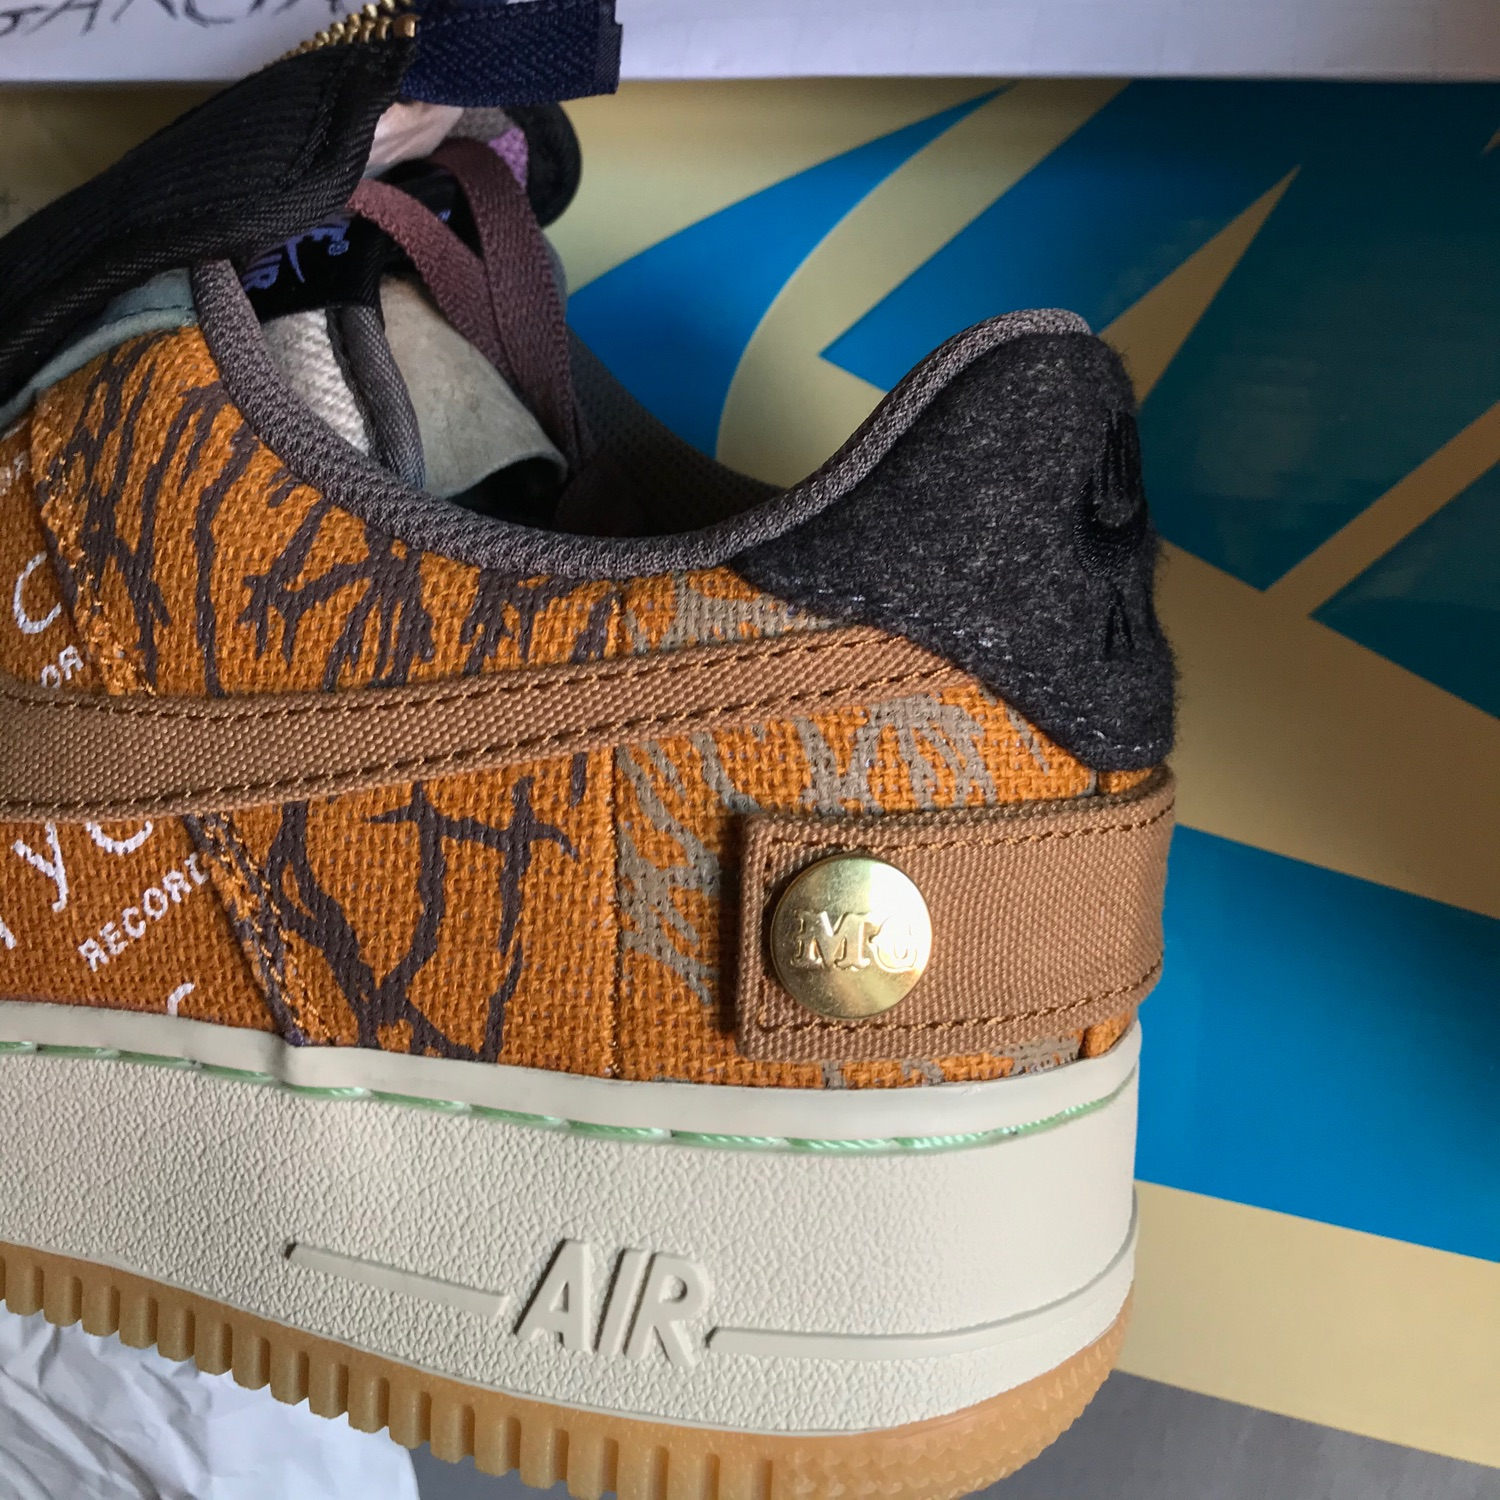 Wts Vendo Nike Air Force 1 Travis Scott 42,5/9Us